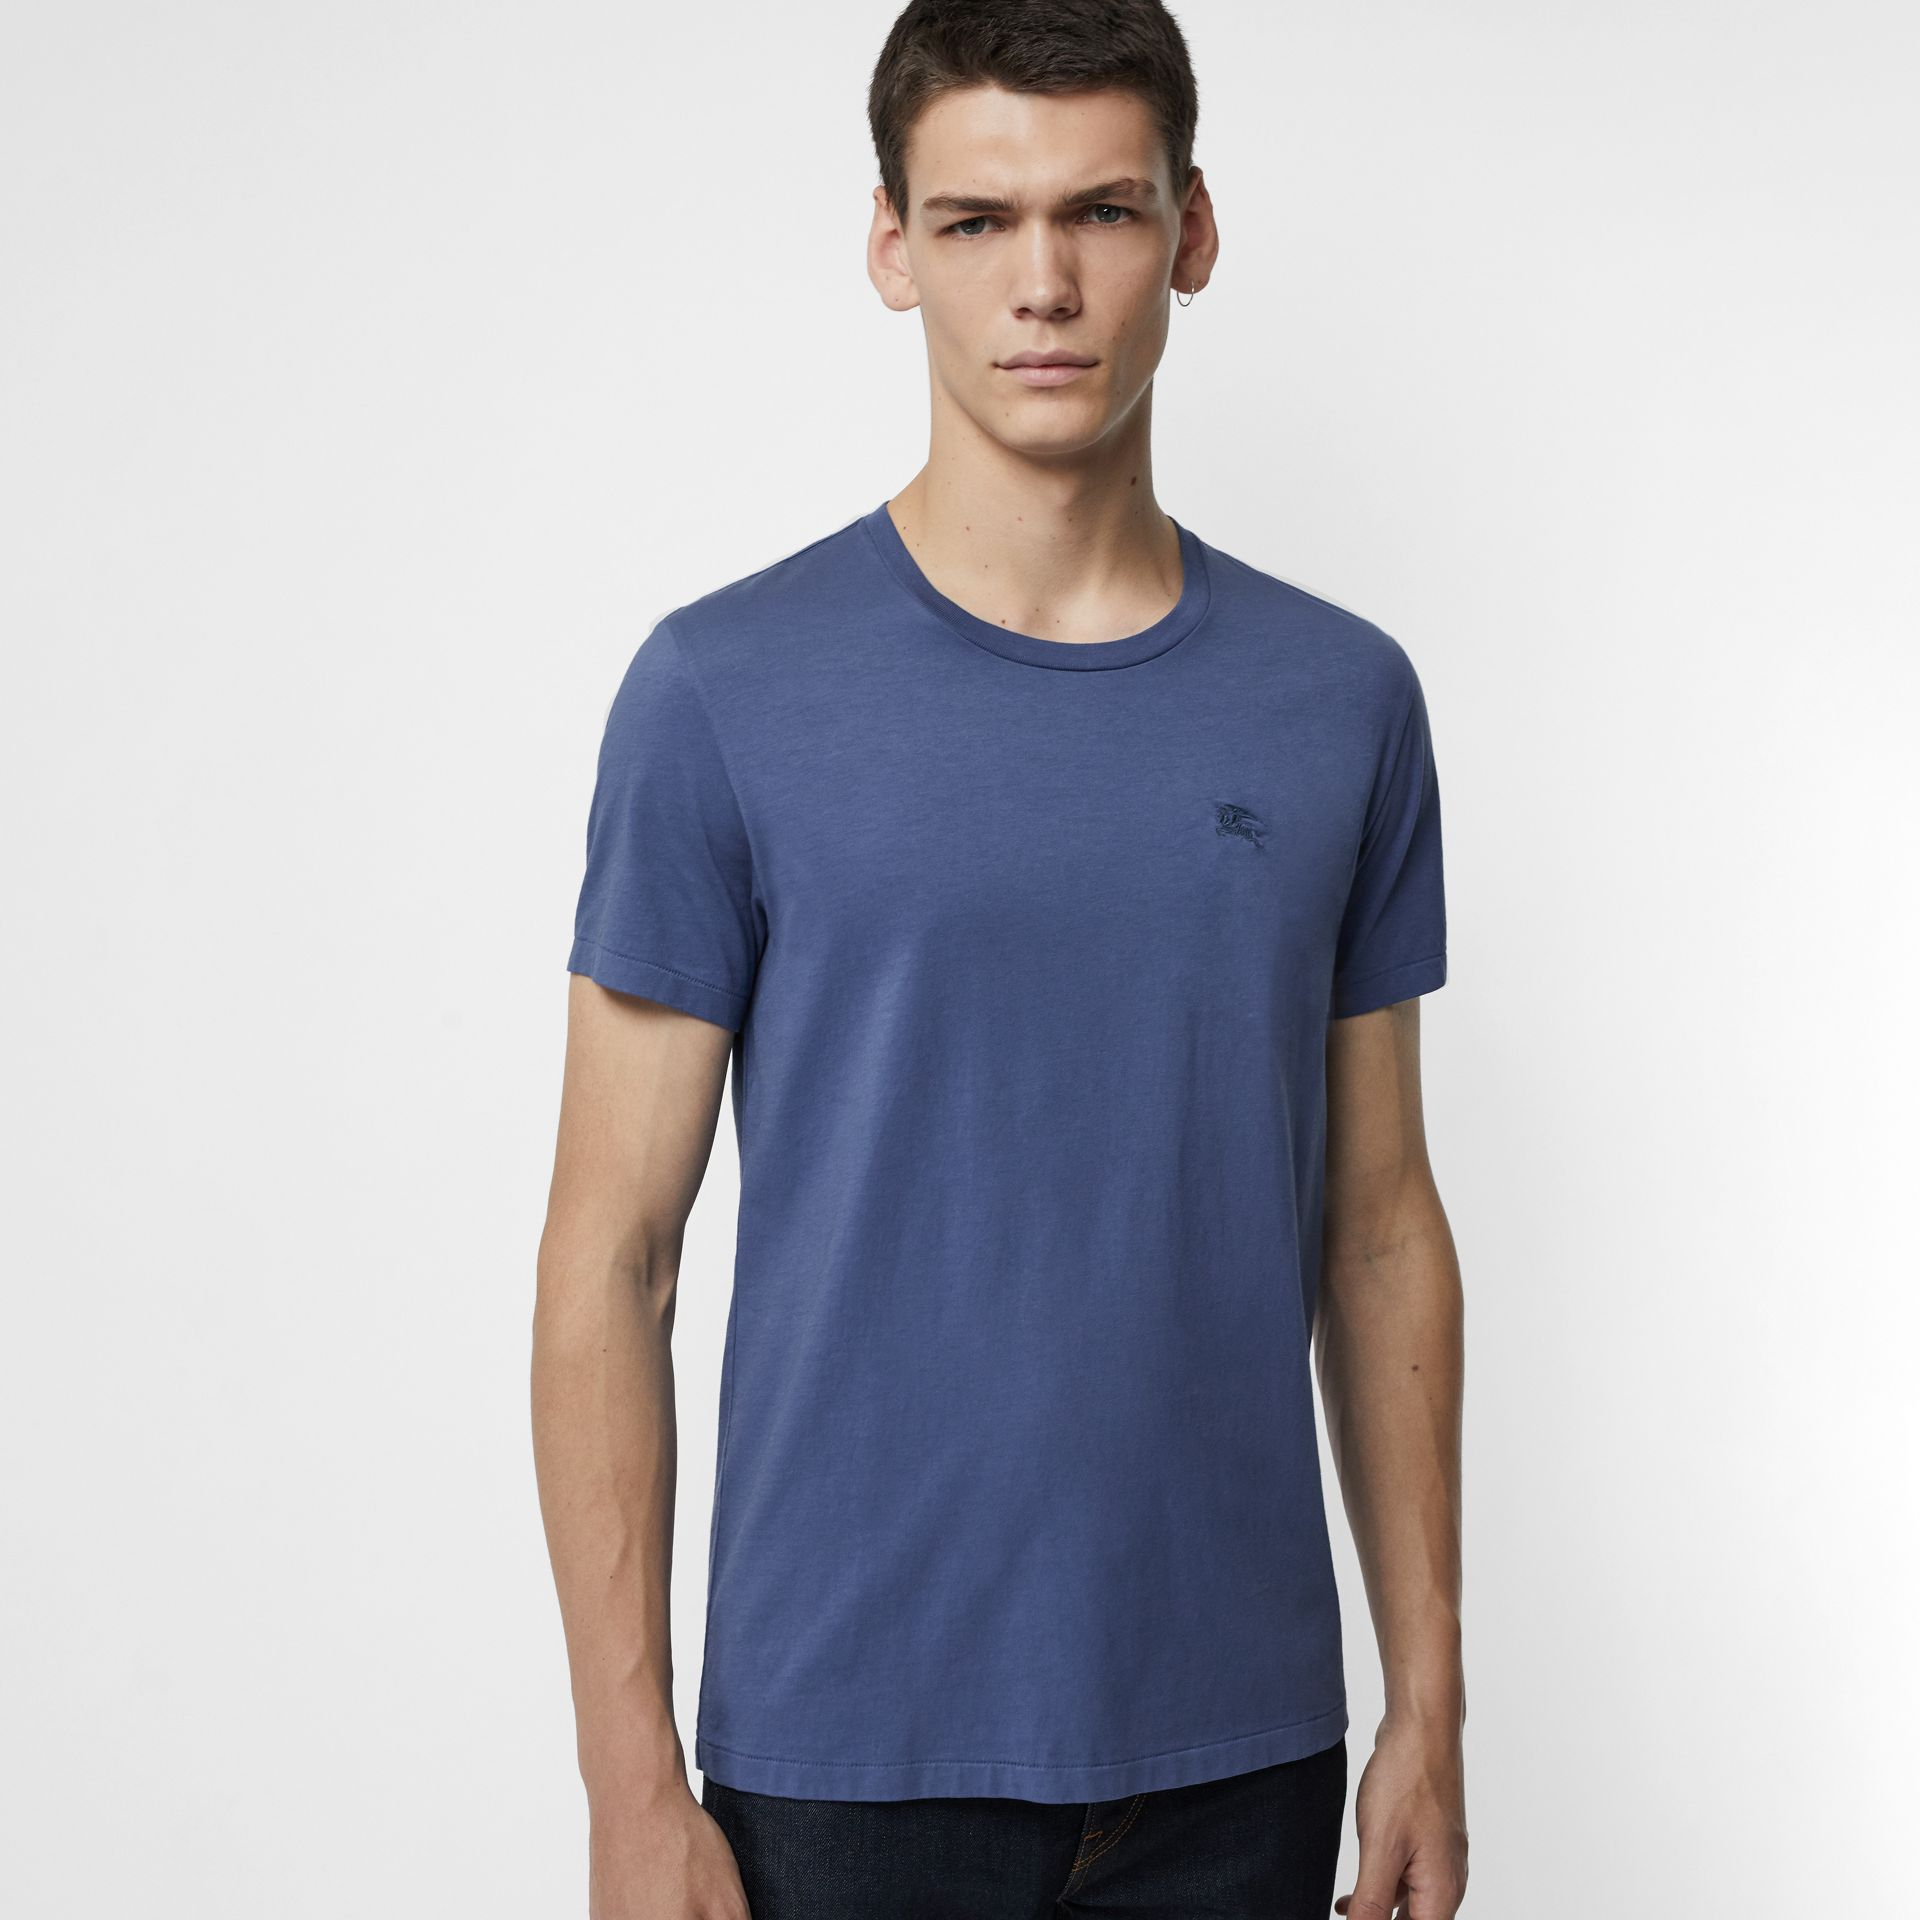 Cotton T-shirt in Pebble Blue - Men | Burberry - gallery image 0